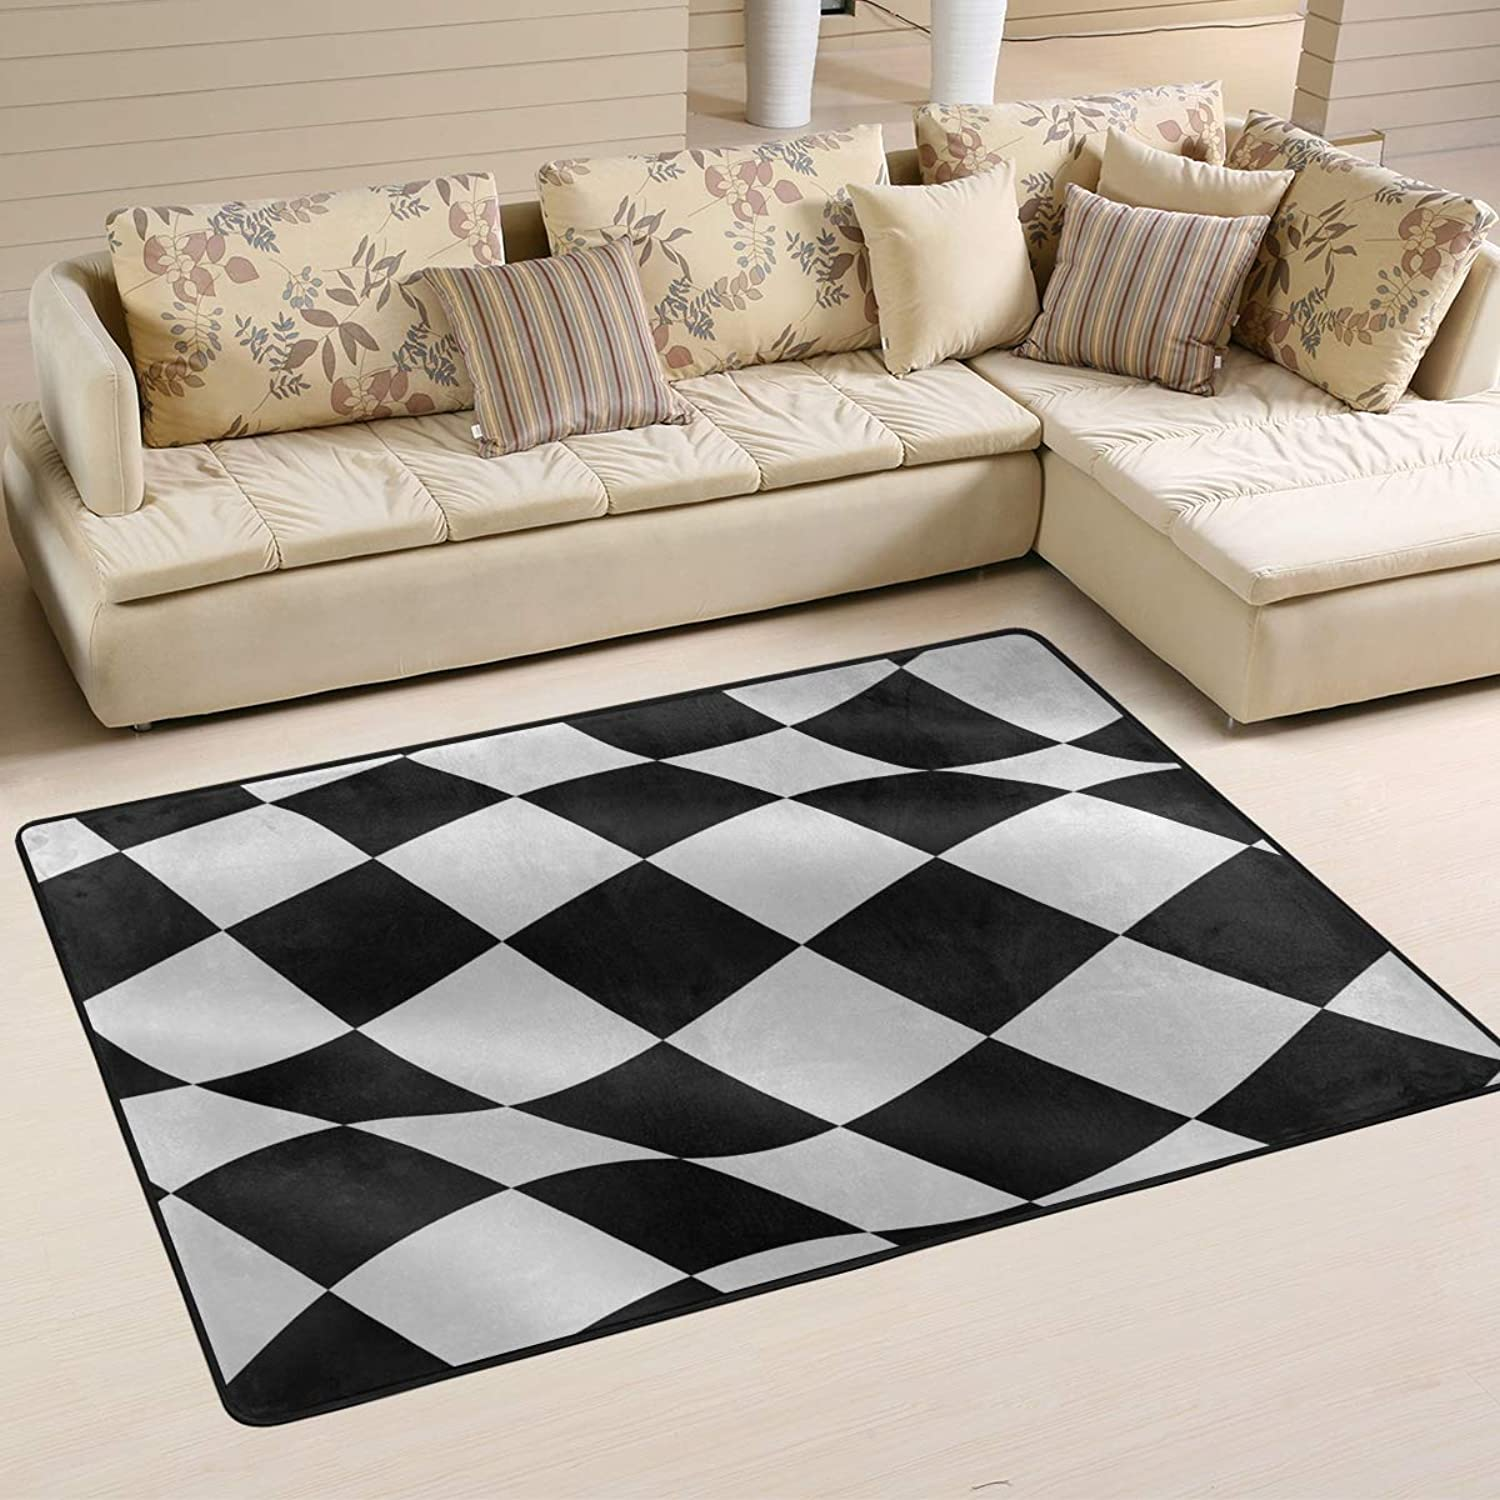 Area Rugs Doormats Black White Checkered Flag Soft Carpet Mat 6'x4' (72x48 Inches) for Living Dining Dorm Room Bedroom Home Decorative